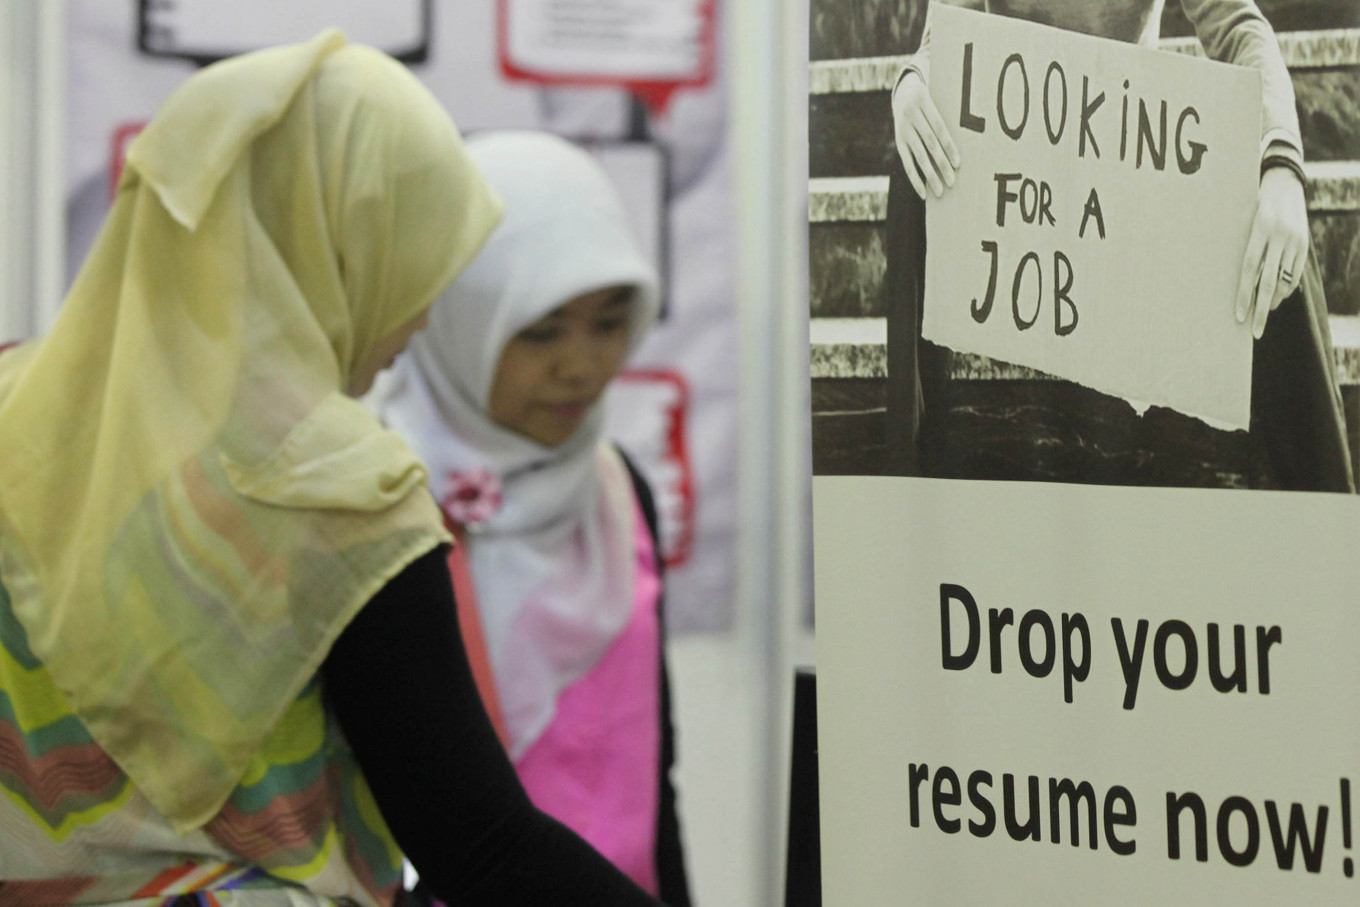 Indonesia's unemployment numbers rise to 6.88 million in February